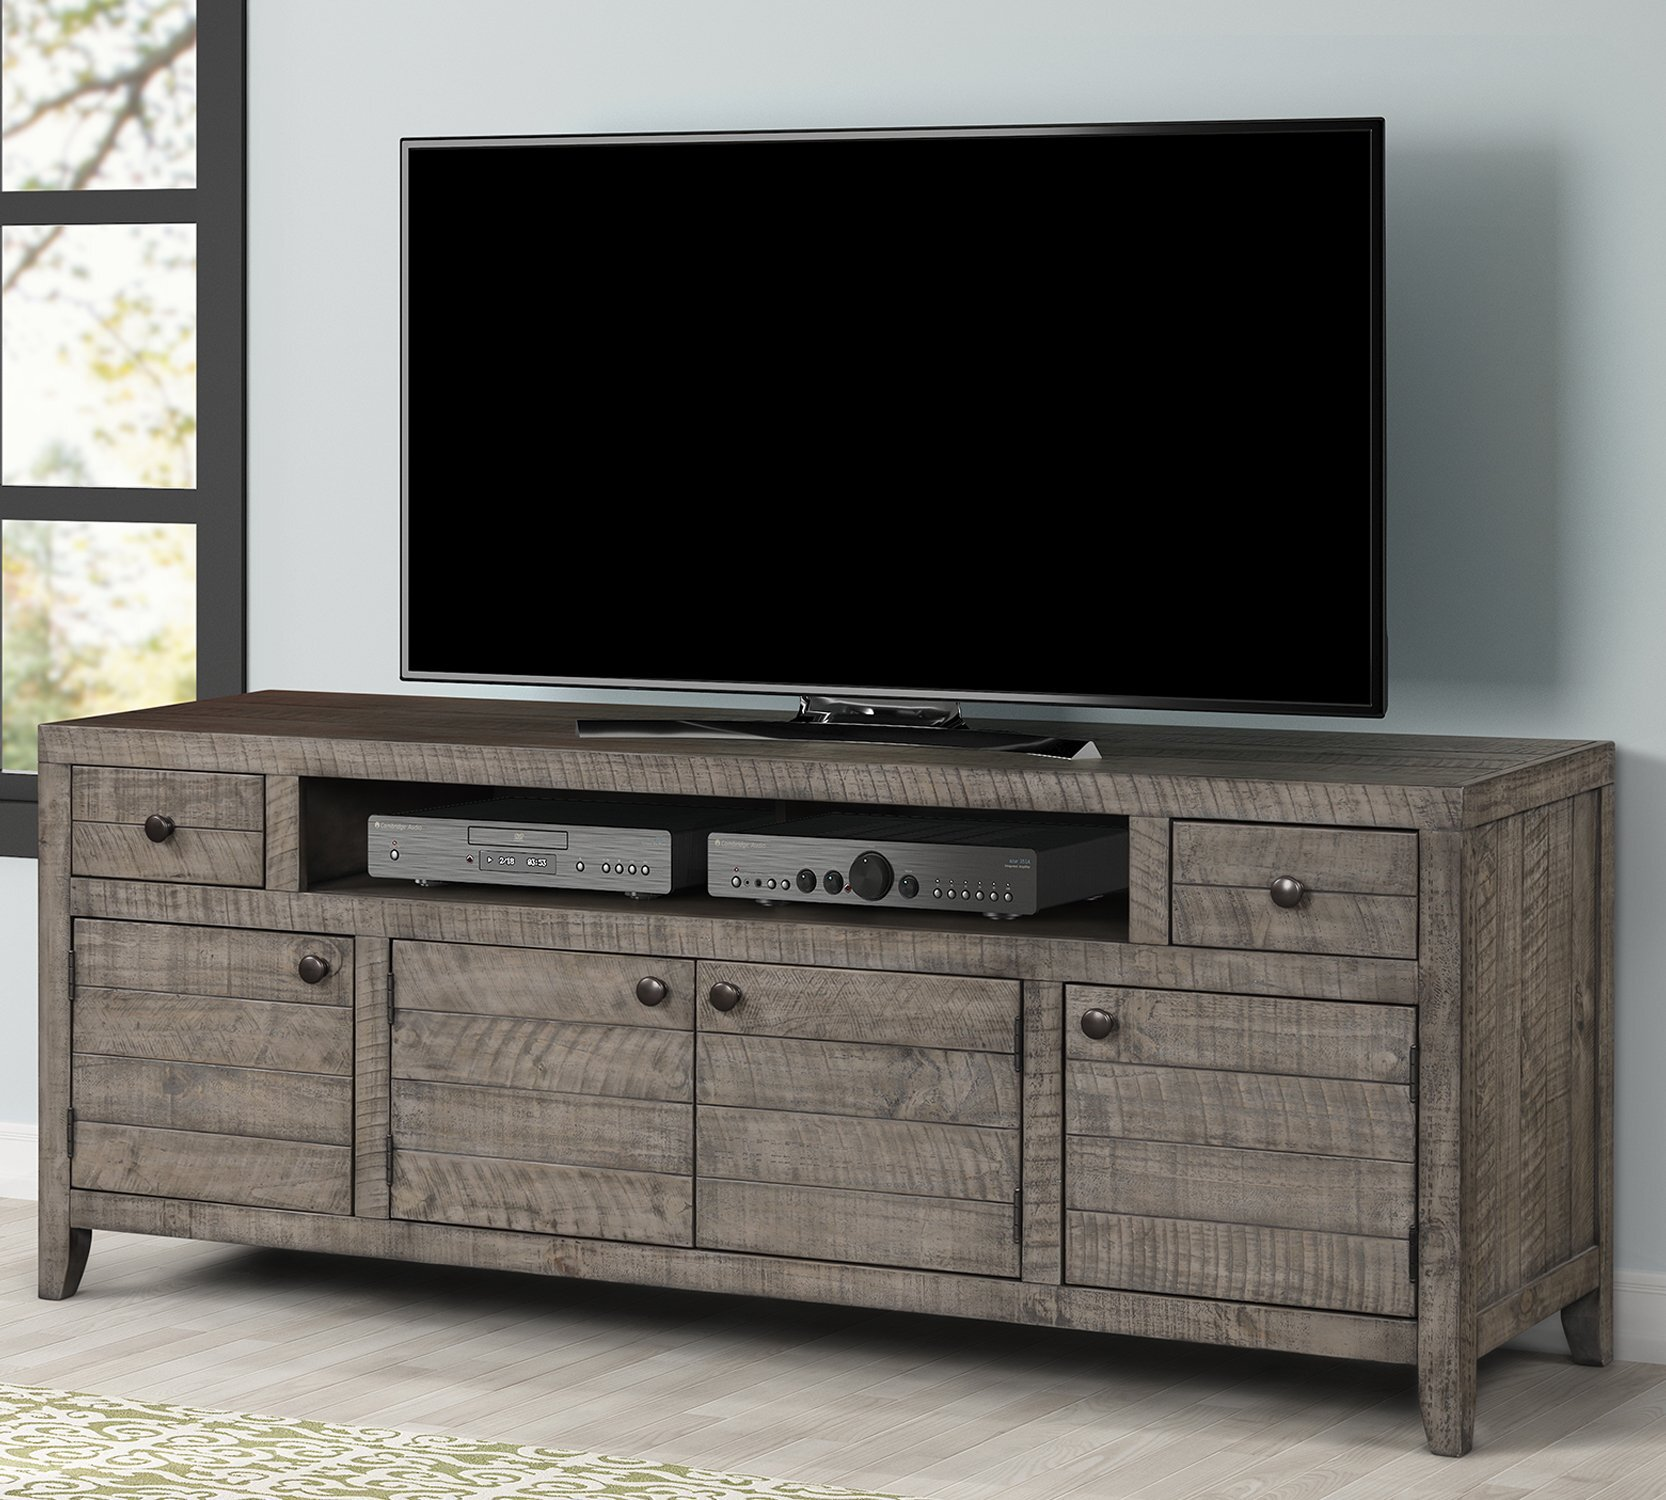 85 Inch Tv Stands Entertainment Centers You Ll Love In 2021 Wayfair